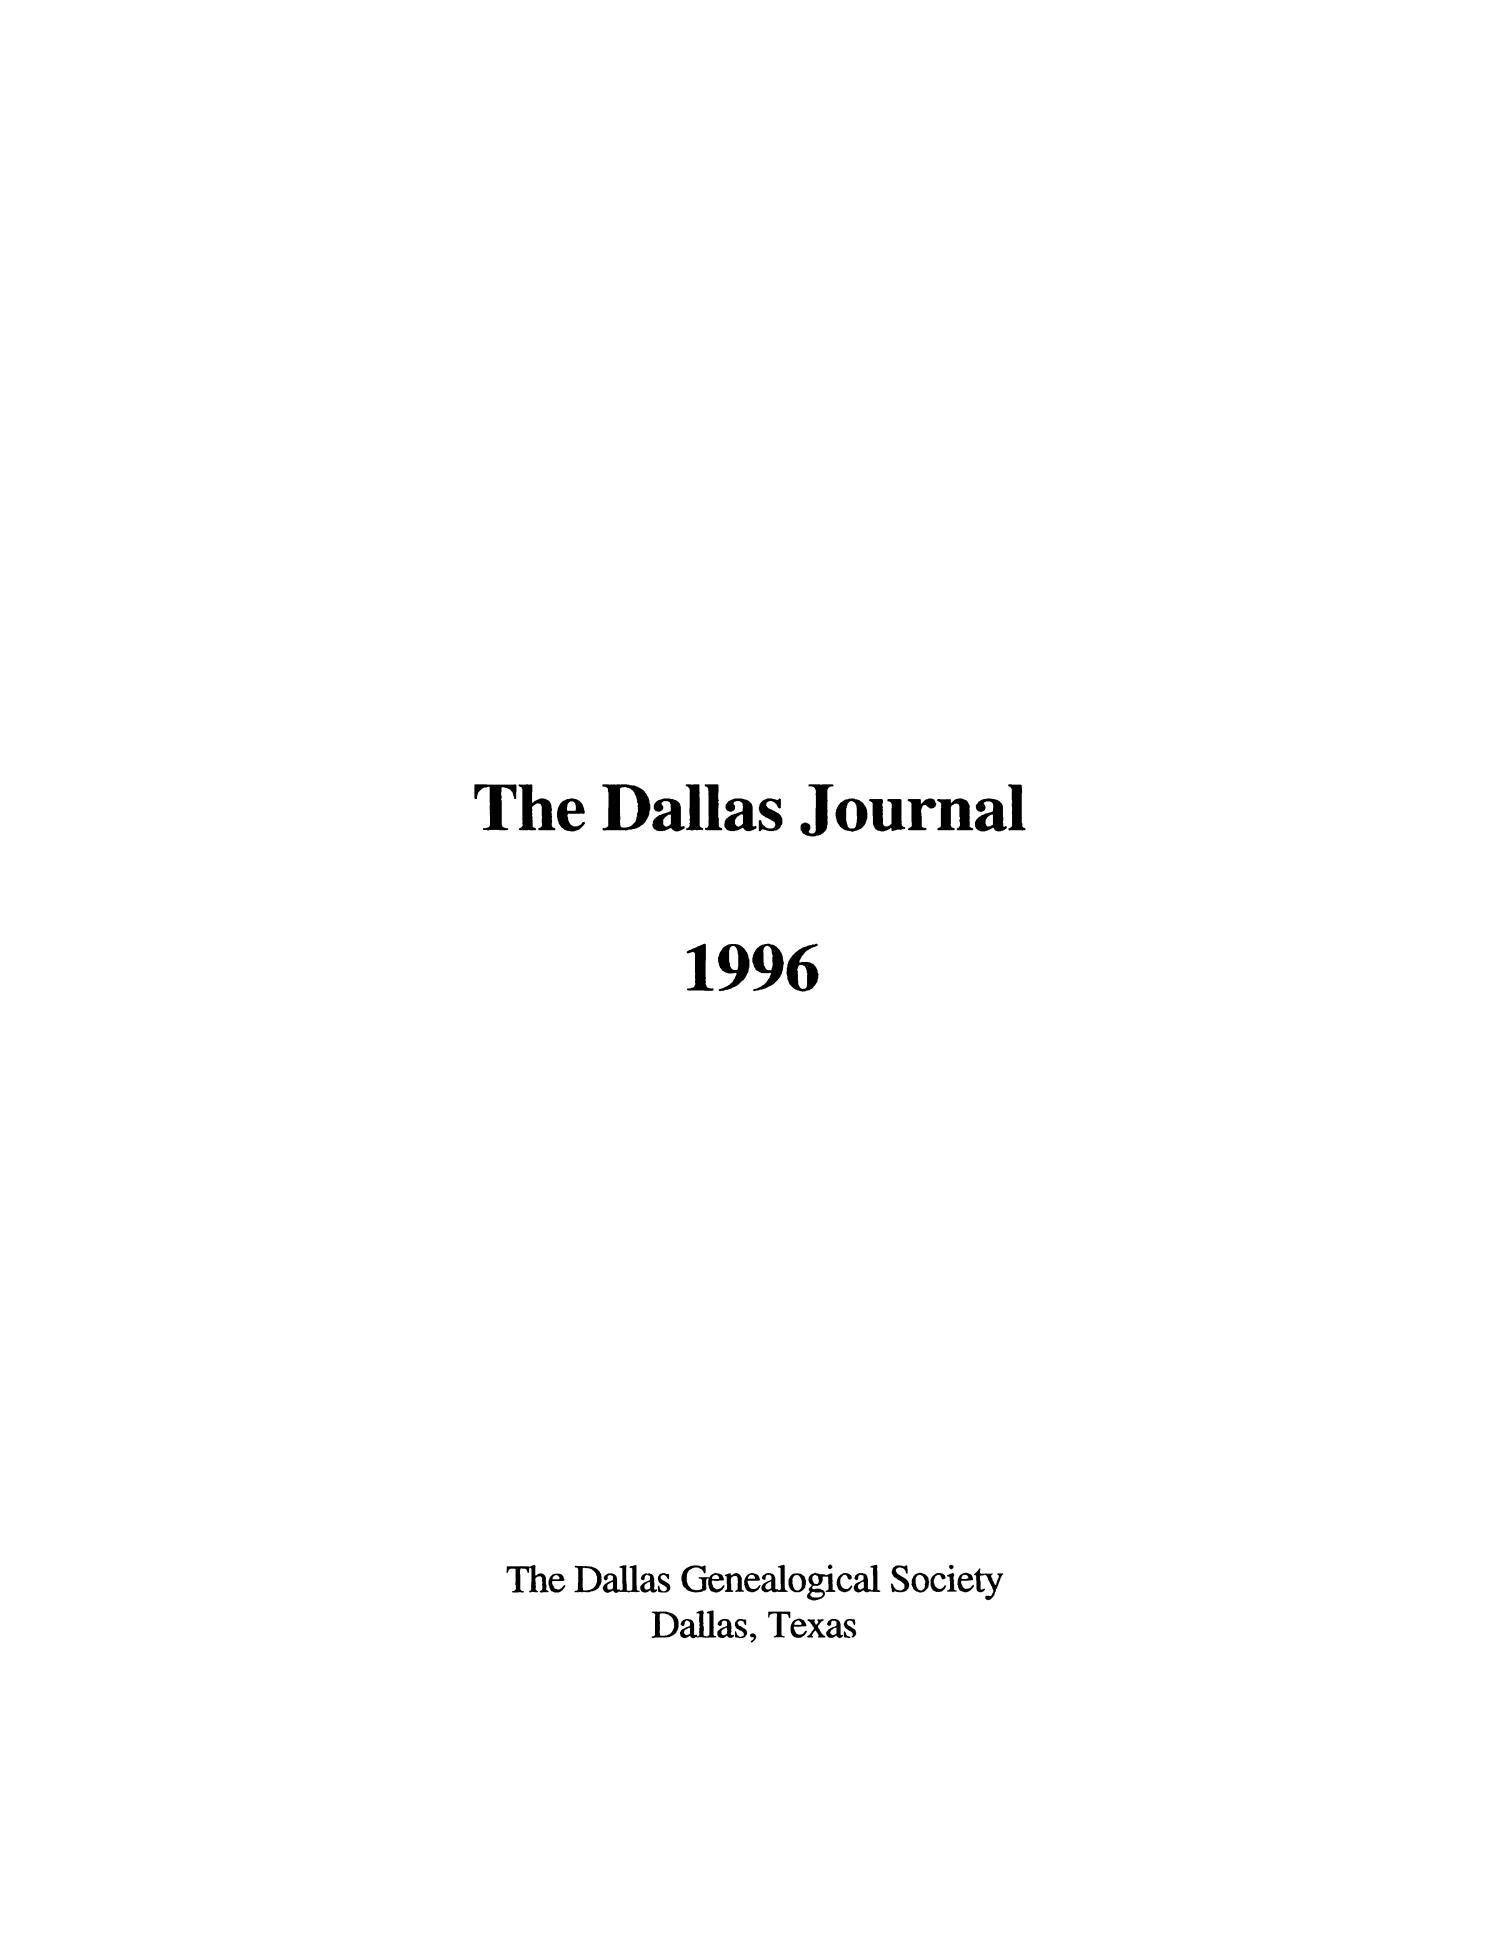 The Dallas Journal, Volume 42, 1996                                                                                                      Title Page